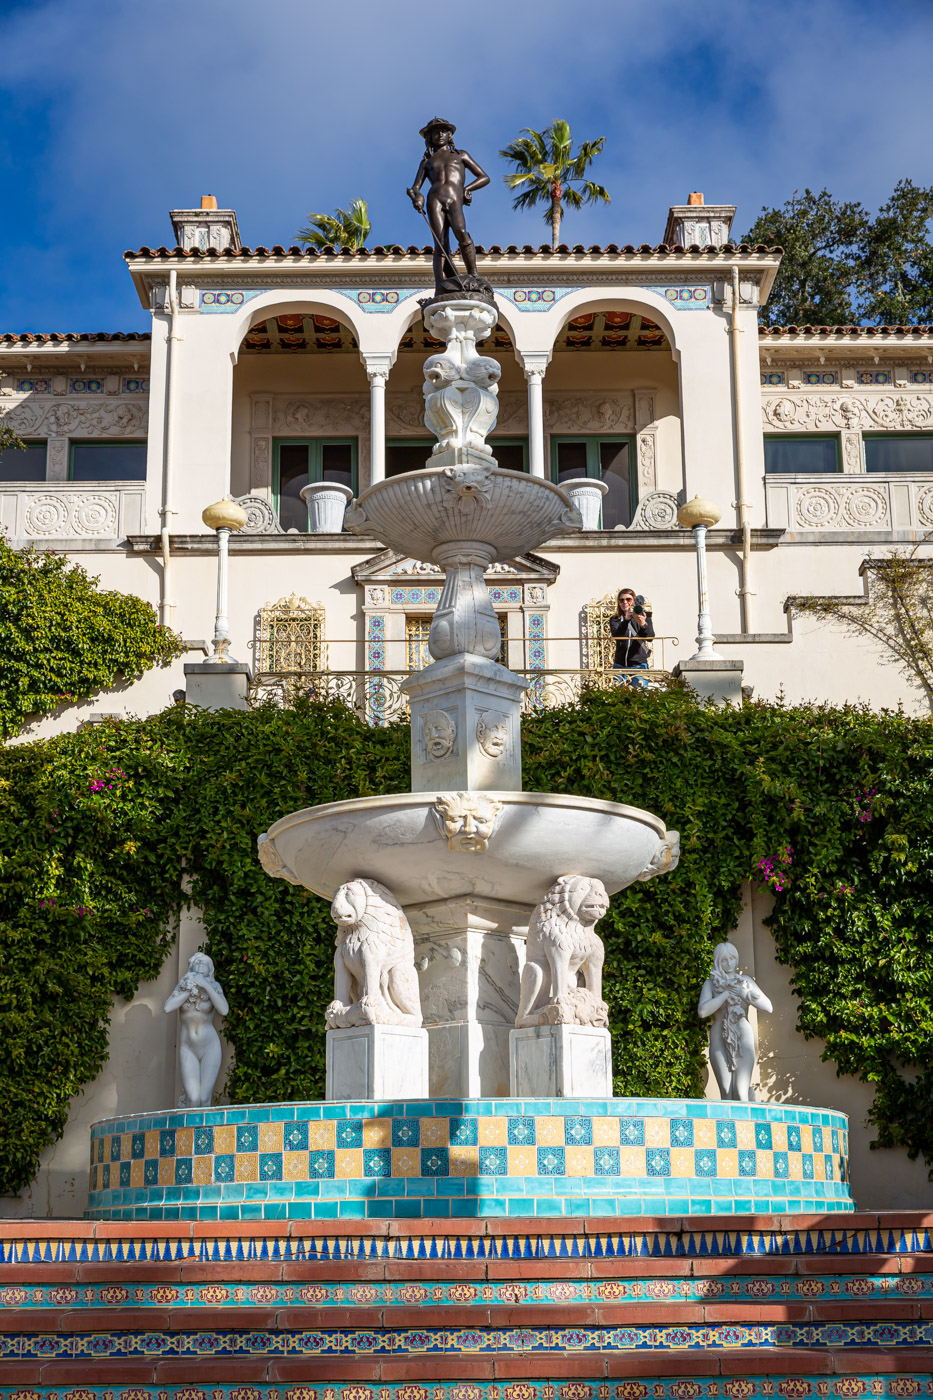 Casa Del Sol at Hearst Castle. On the Hearst Castle Tours